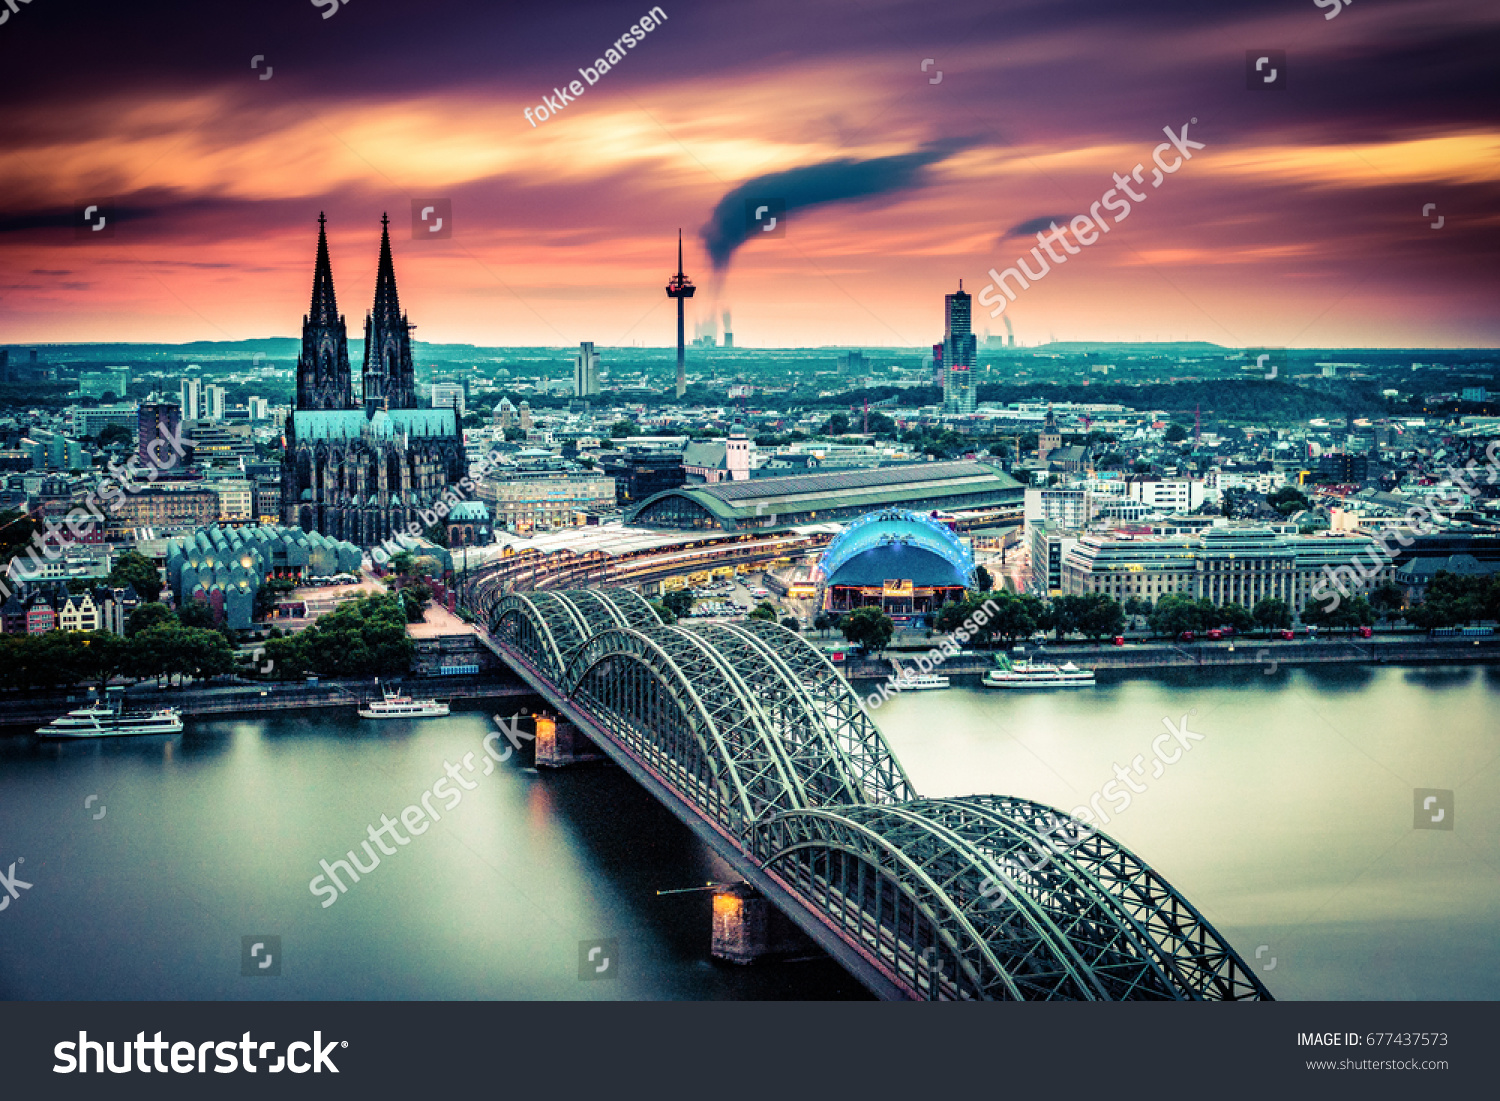 long exposure sunset moving clouds over the city cologne germany evening scene over cologne